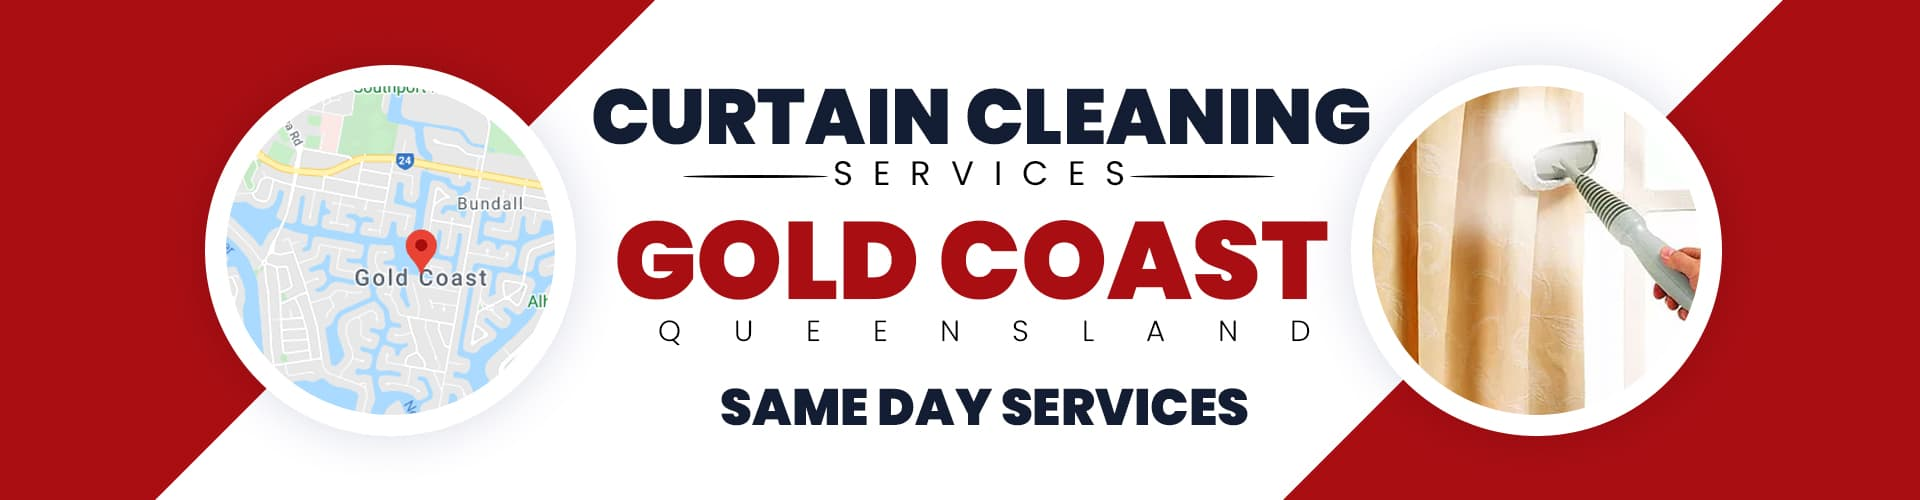 Curtain Cleaning Gold Coast